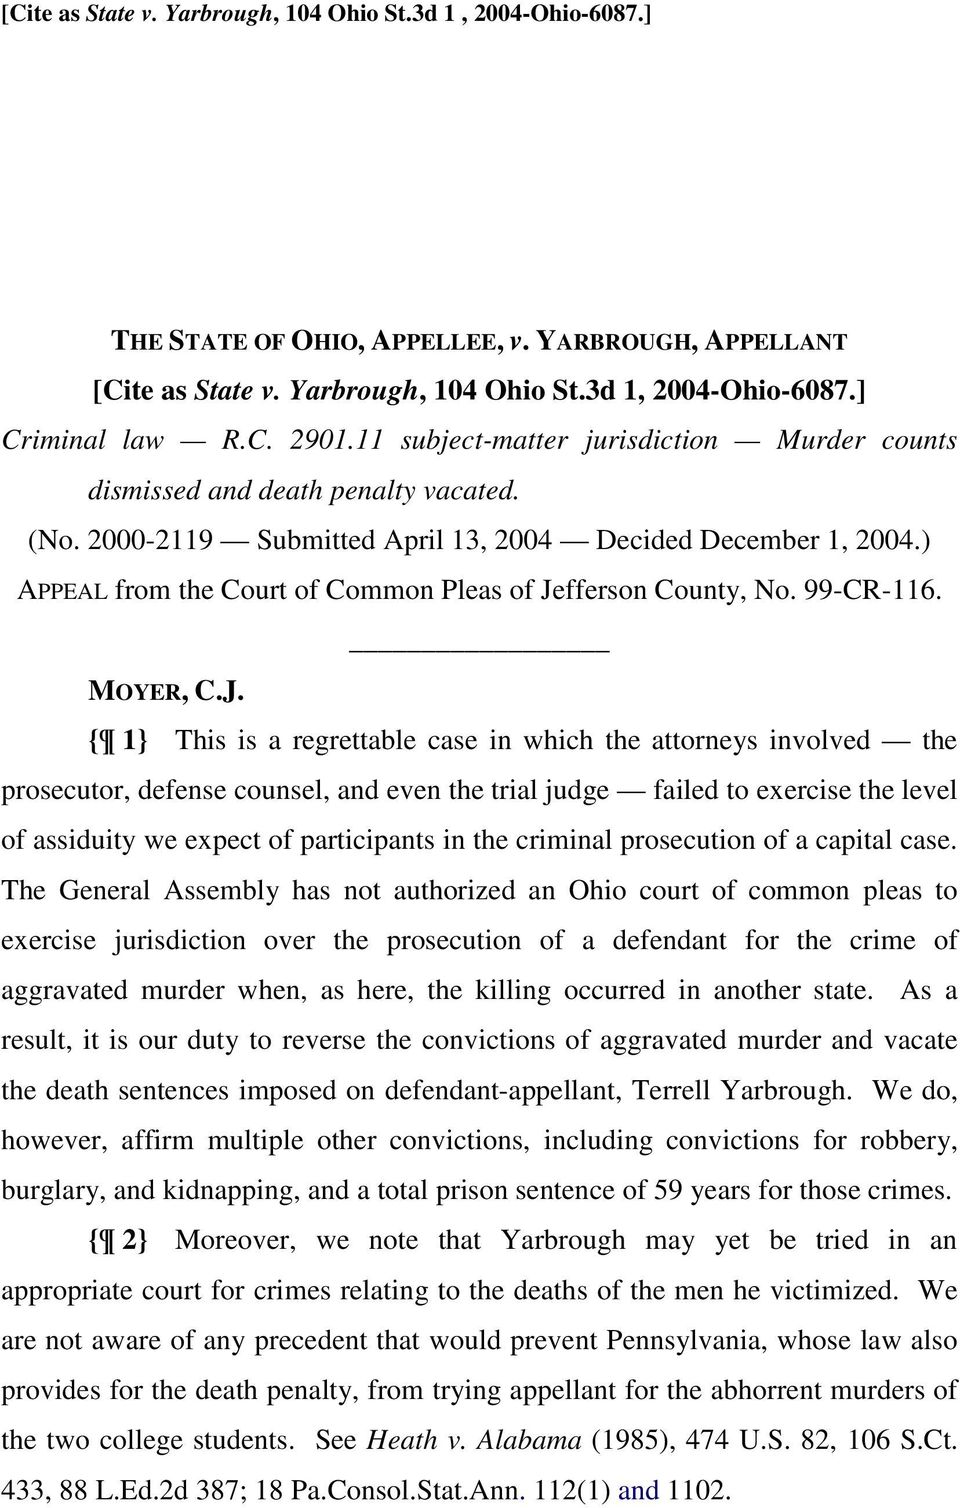 ) APPEAL from the Court of Common Pleas of Je